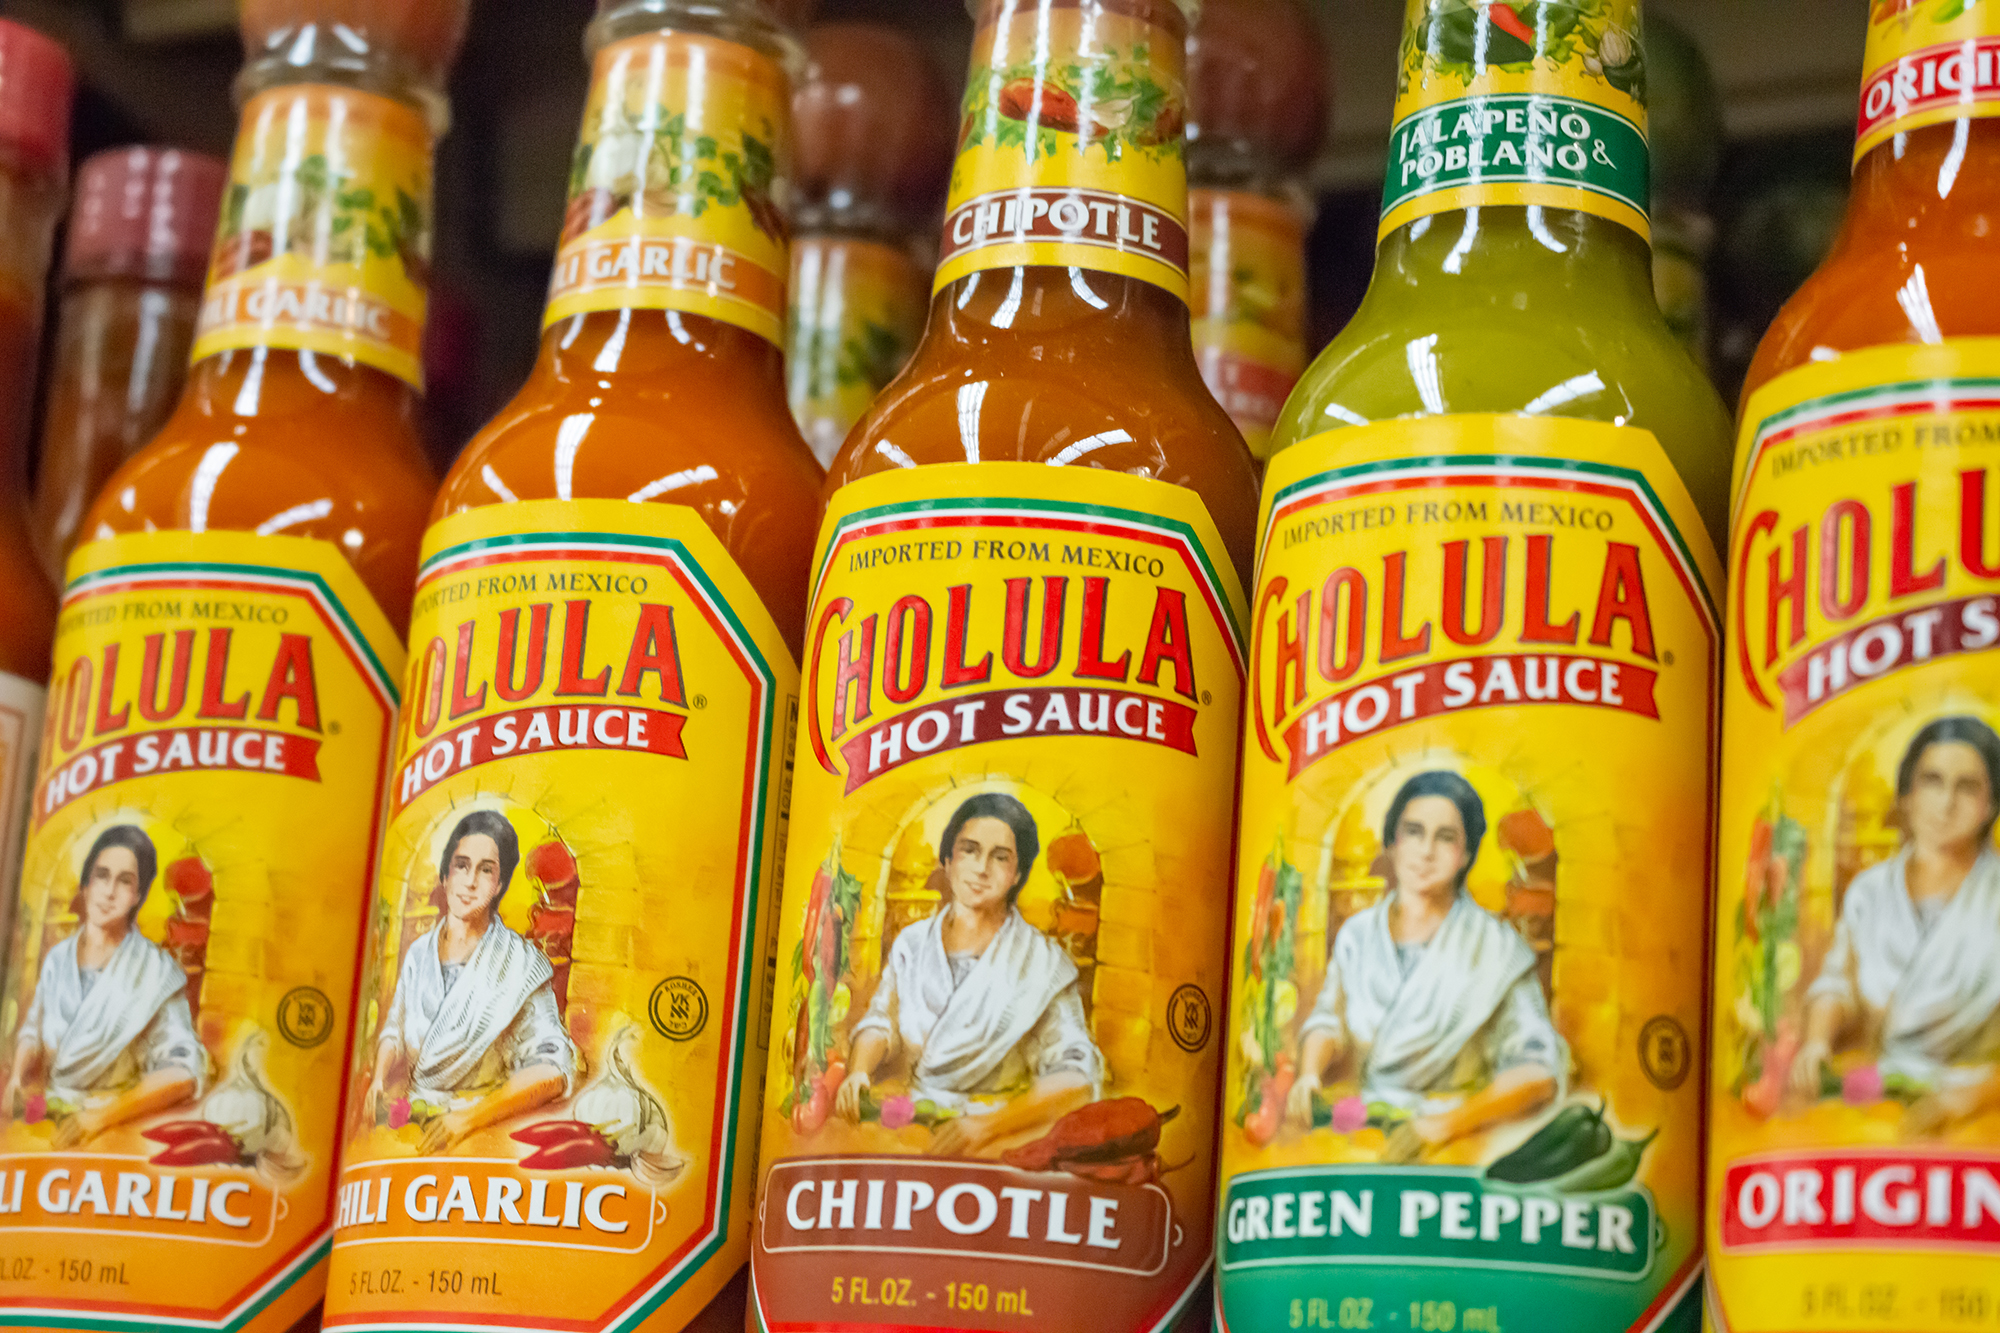 Frank's RedHot owner buys Cholula in $800 million deal